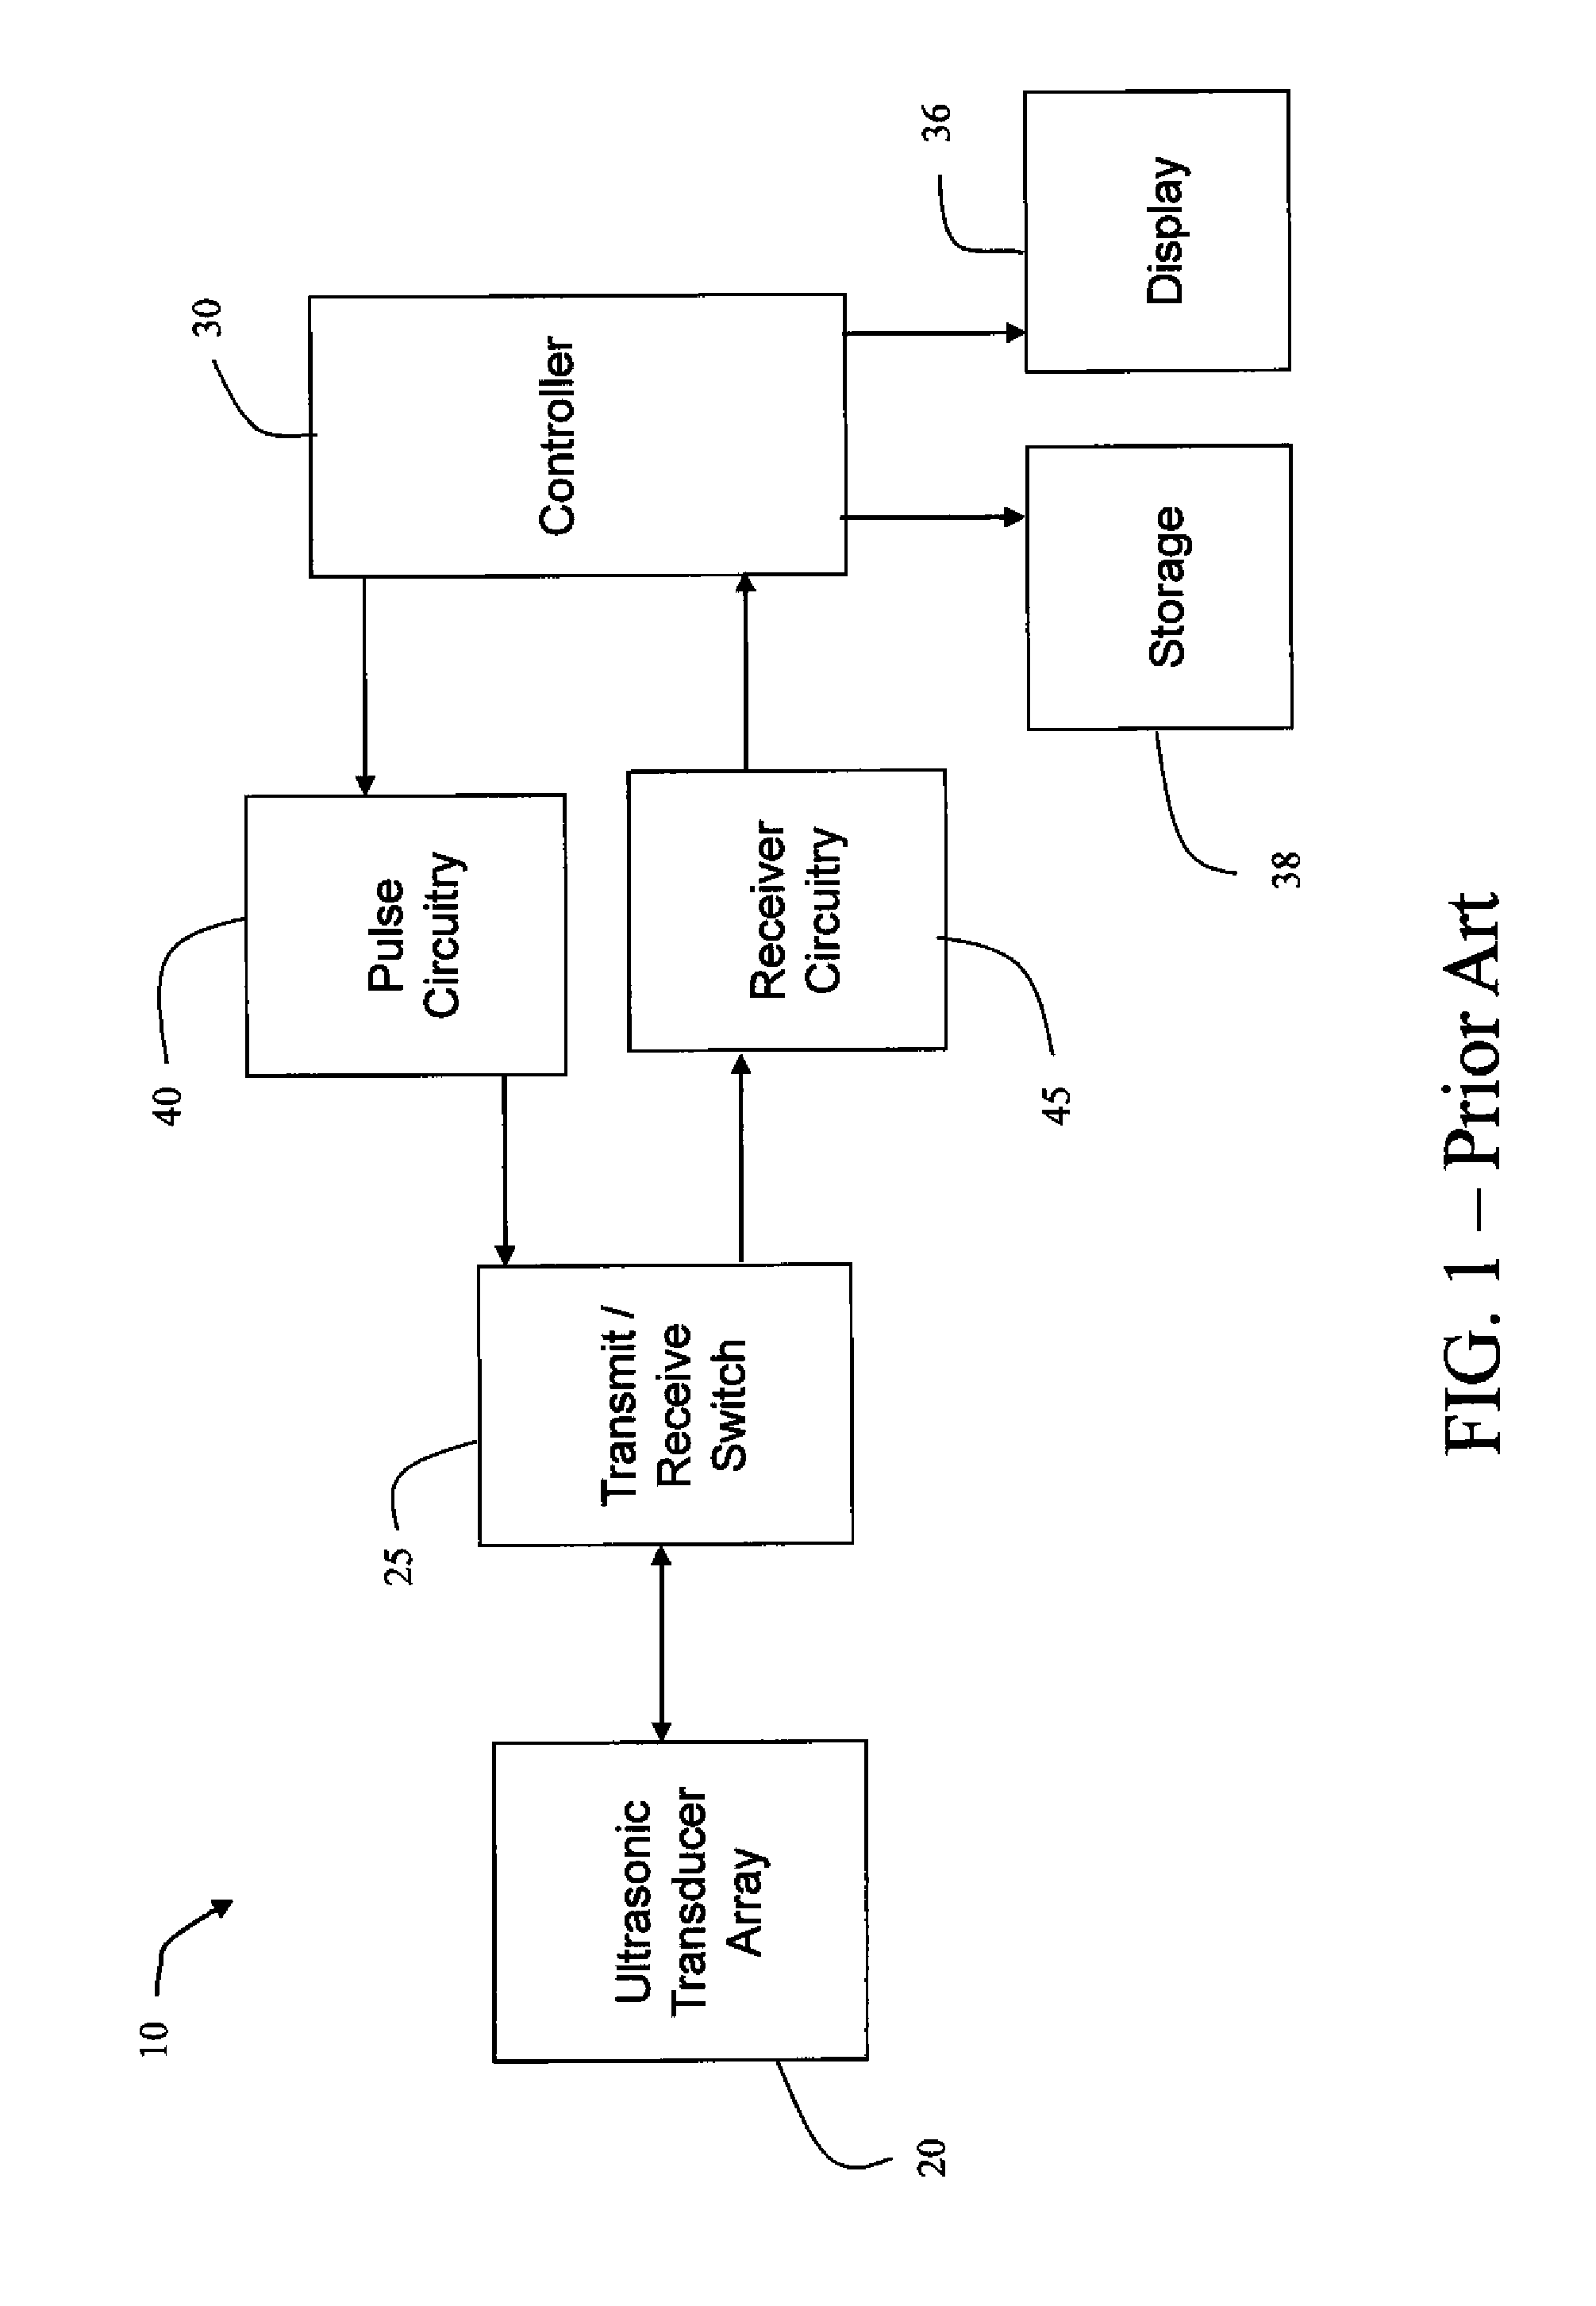 Ultrasonic Transmitter And Receiver Evointee Parking Sensor Circuit Electronic Circuits Diagramelectronics Patent Us20120266675 Method Of Operating An Infrared Alarm Barrier